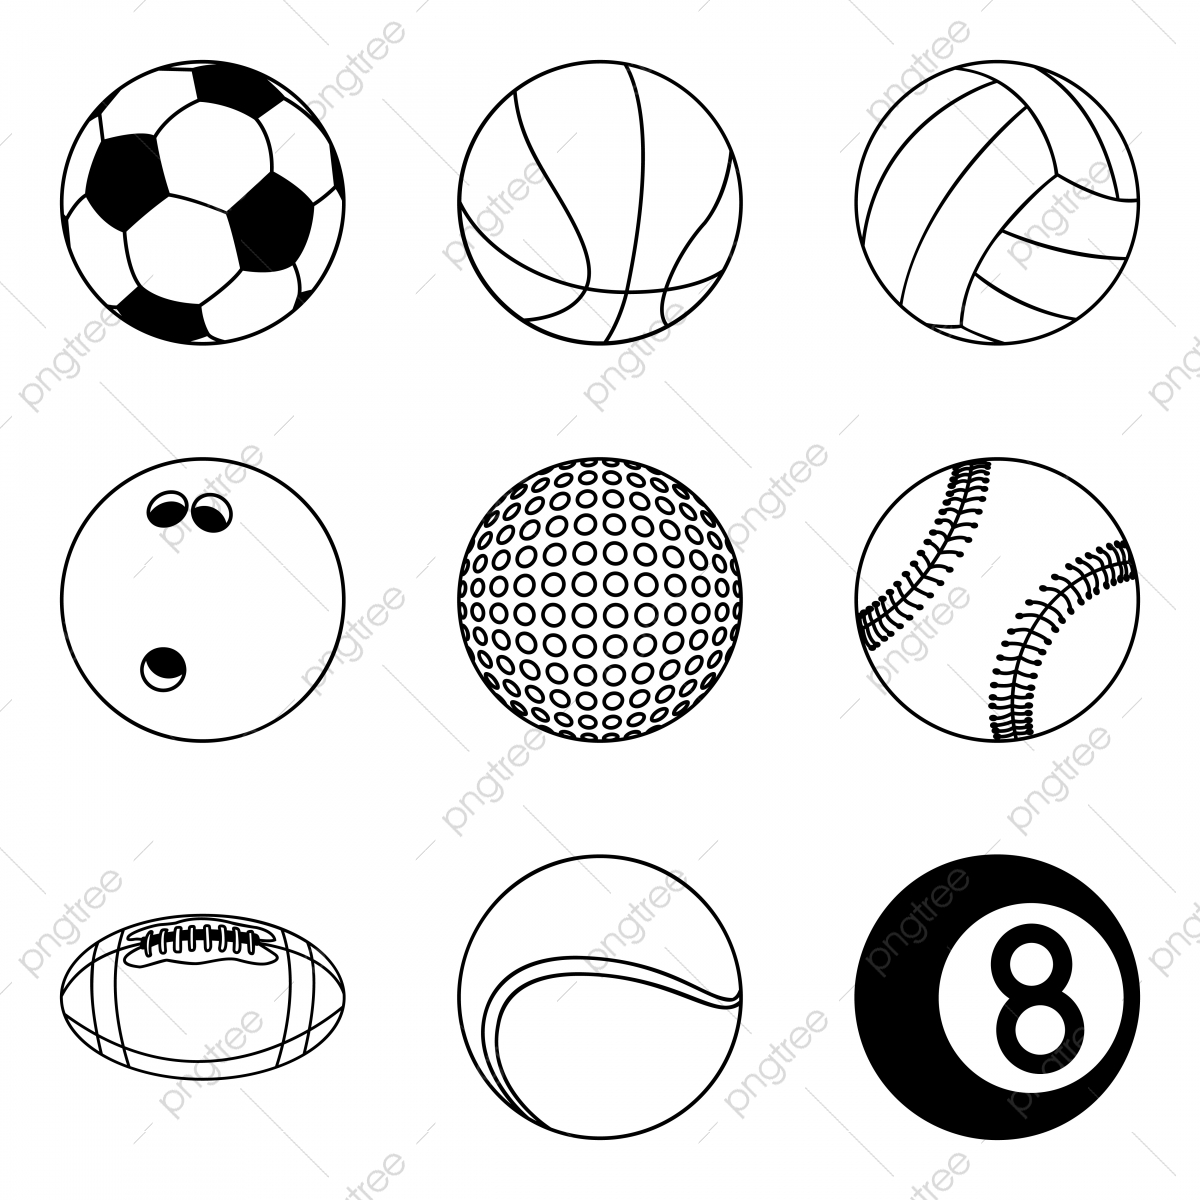 Sports Balls Png Vector Psd And Clipart With Transparent Background For Free Download Pngtree